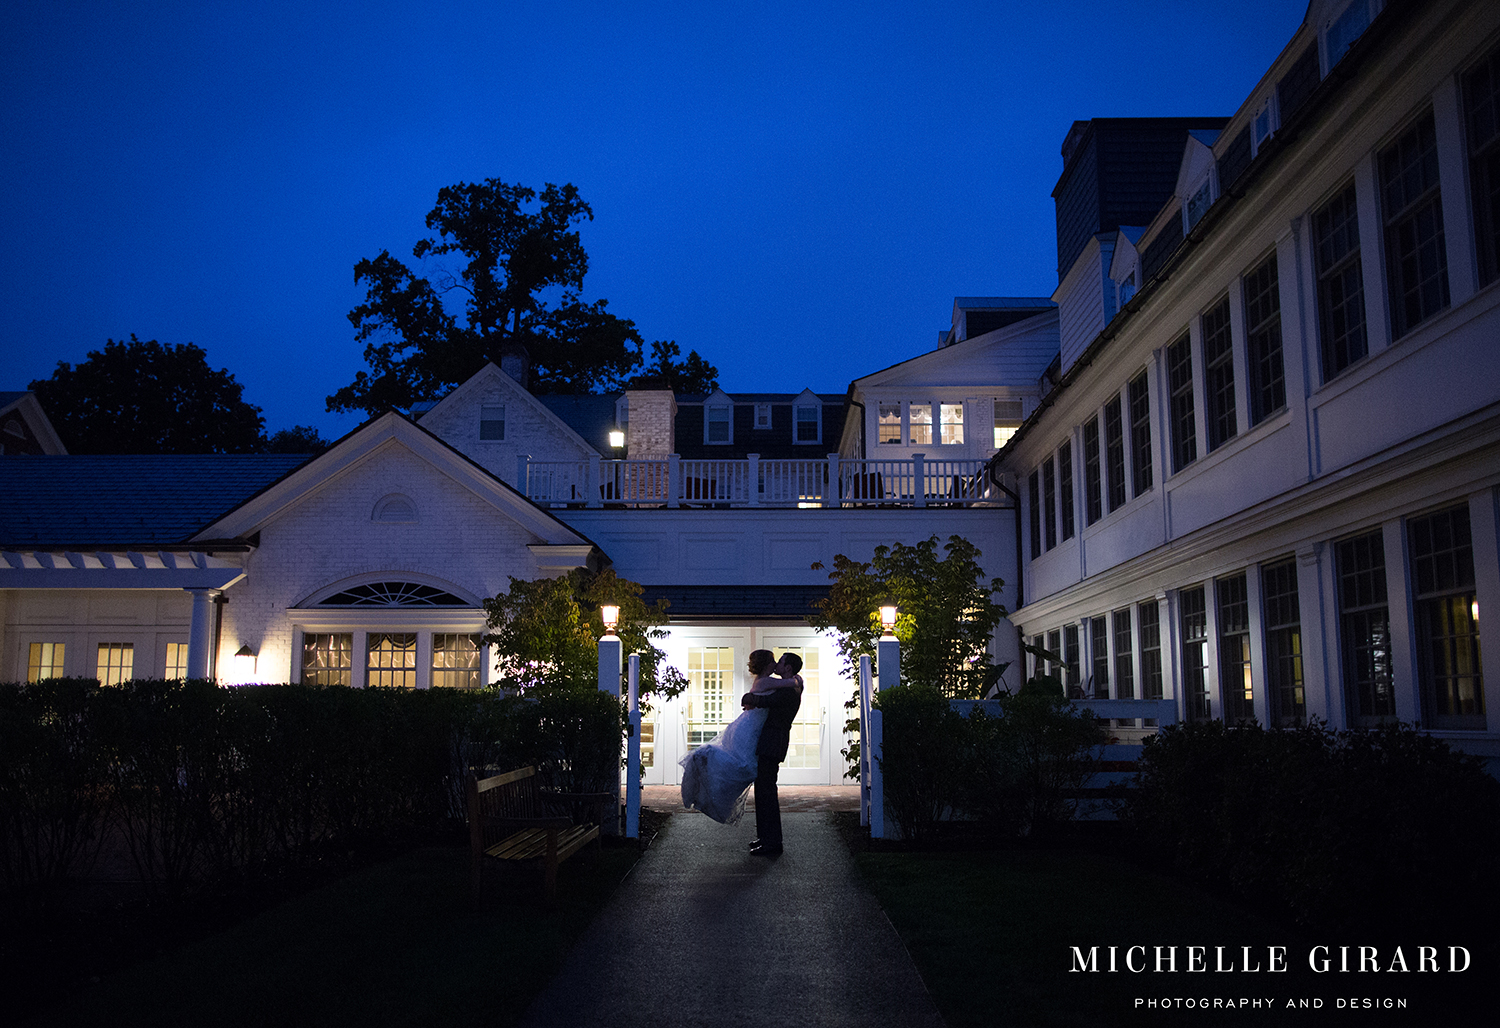 SeptemberWedding_TheLordJefferyInn_AmherstMa_MichelleGirardPhotography06.jpg